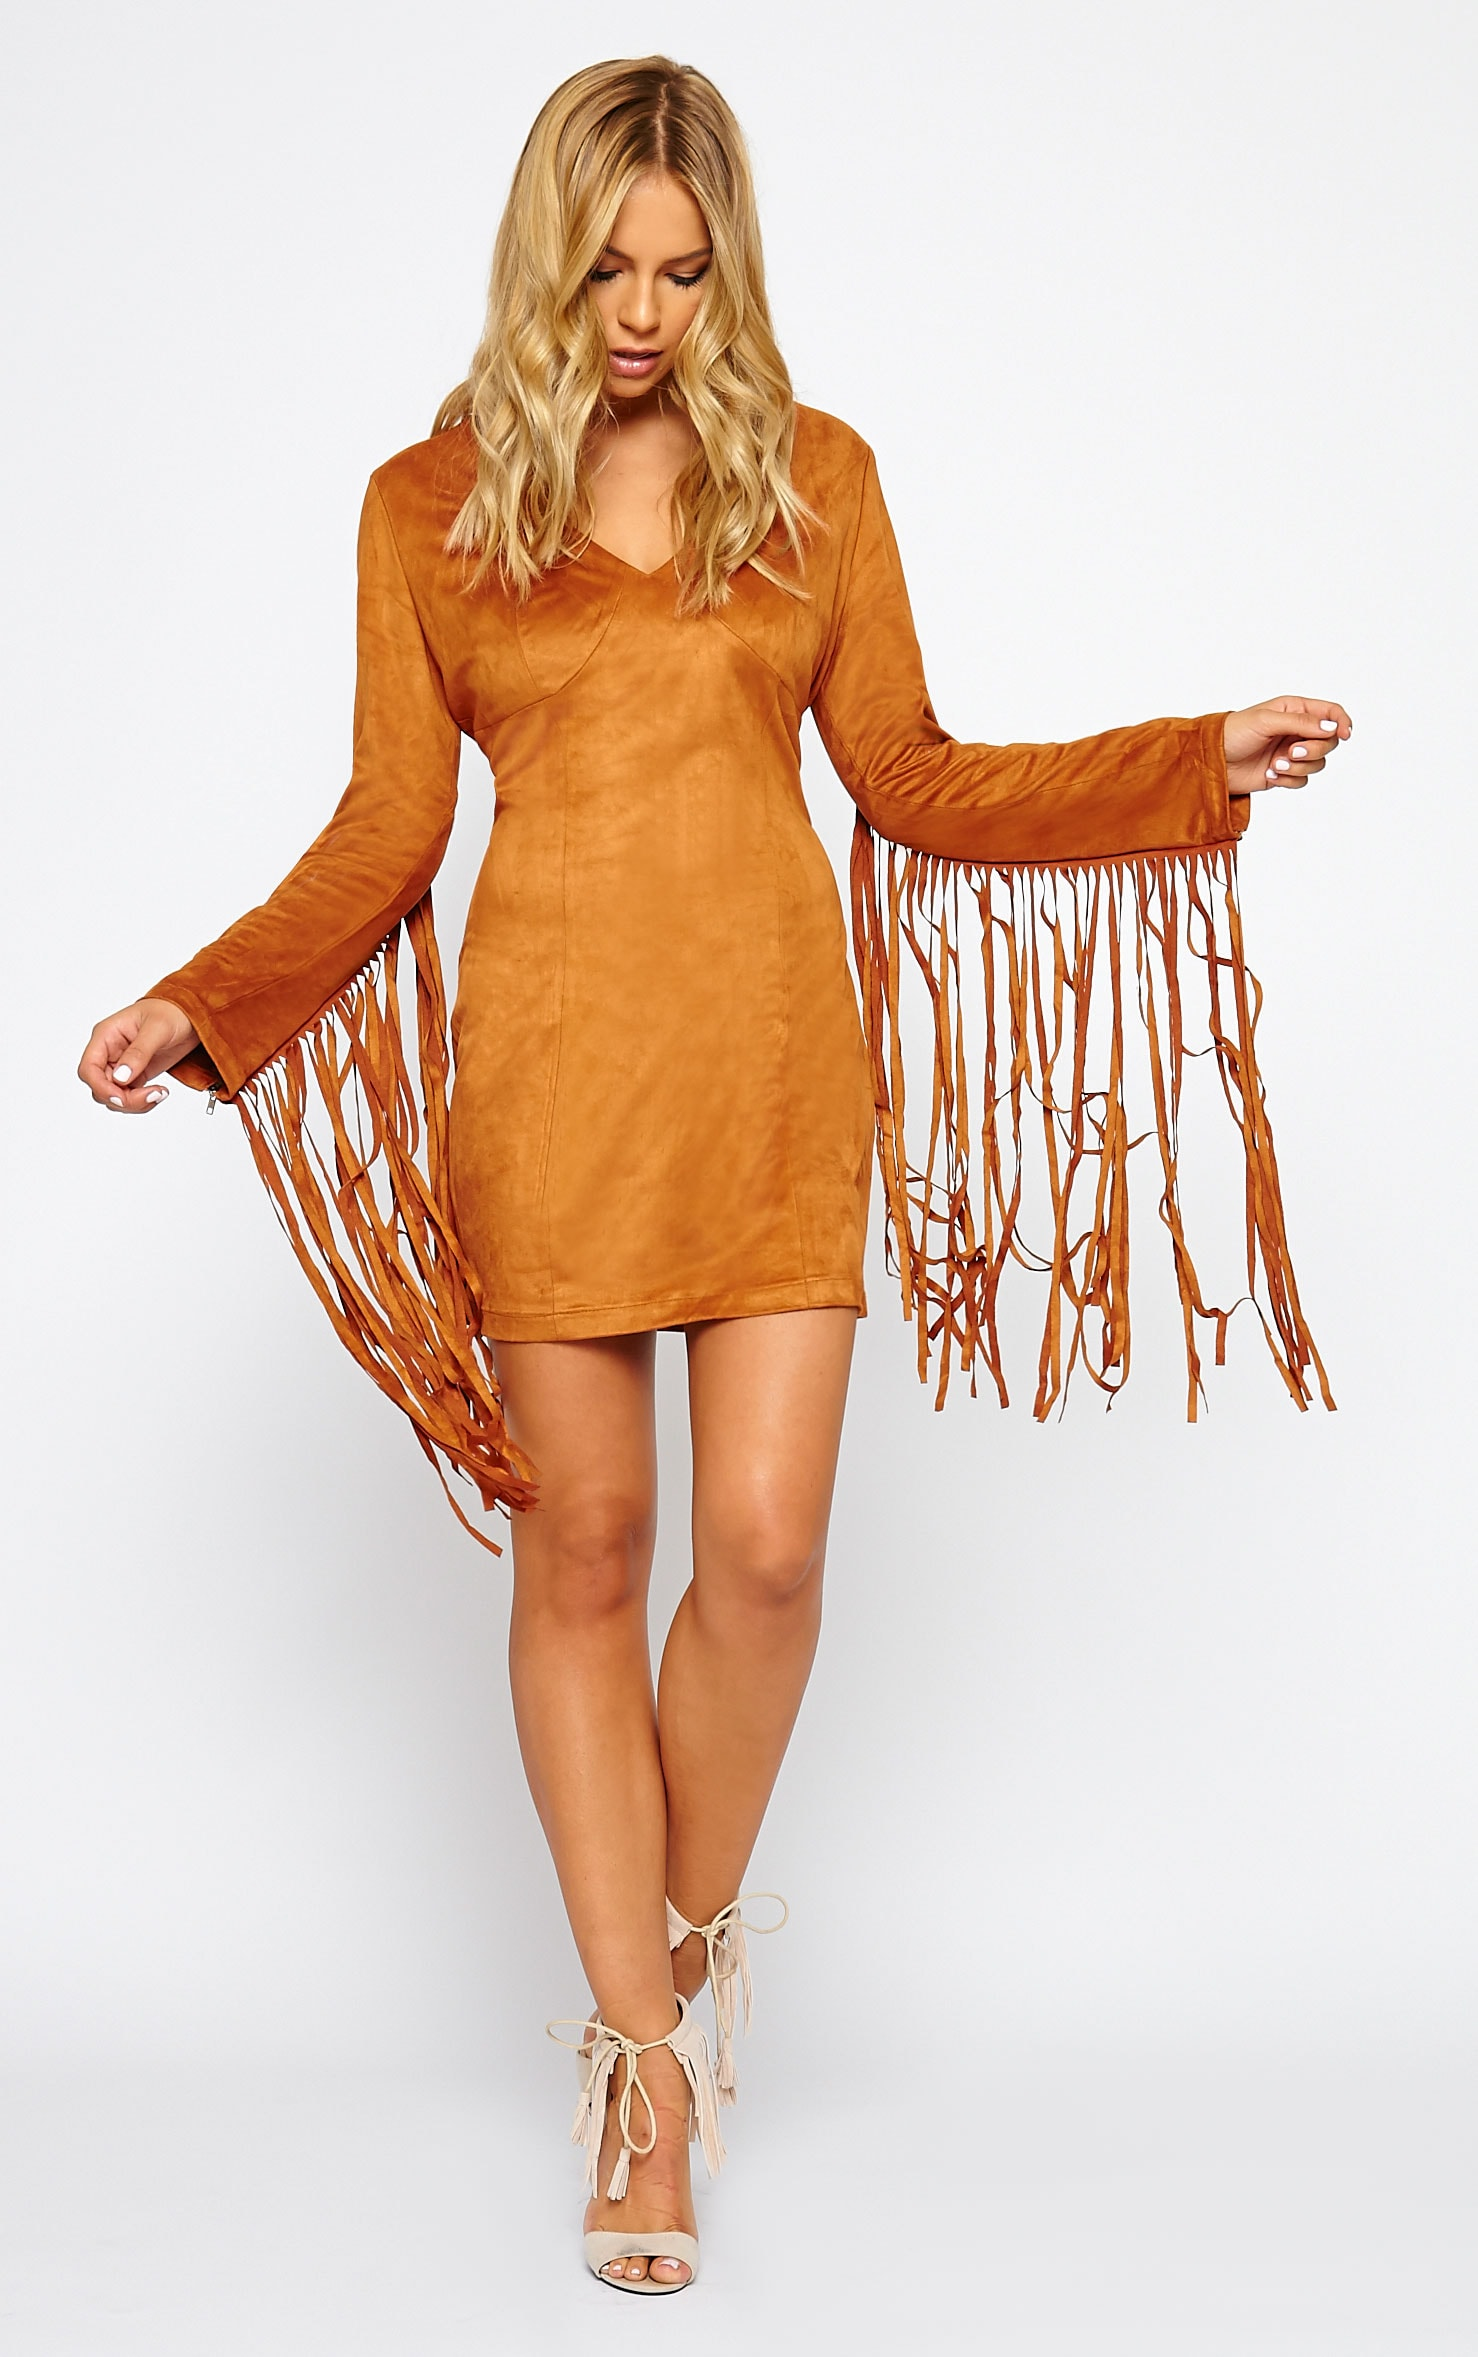 Nexie Tan Suede Fringe Mini Dress 3